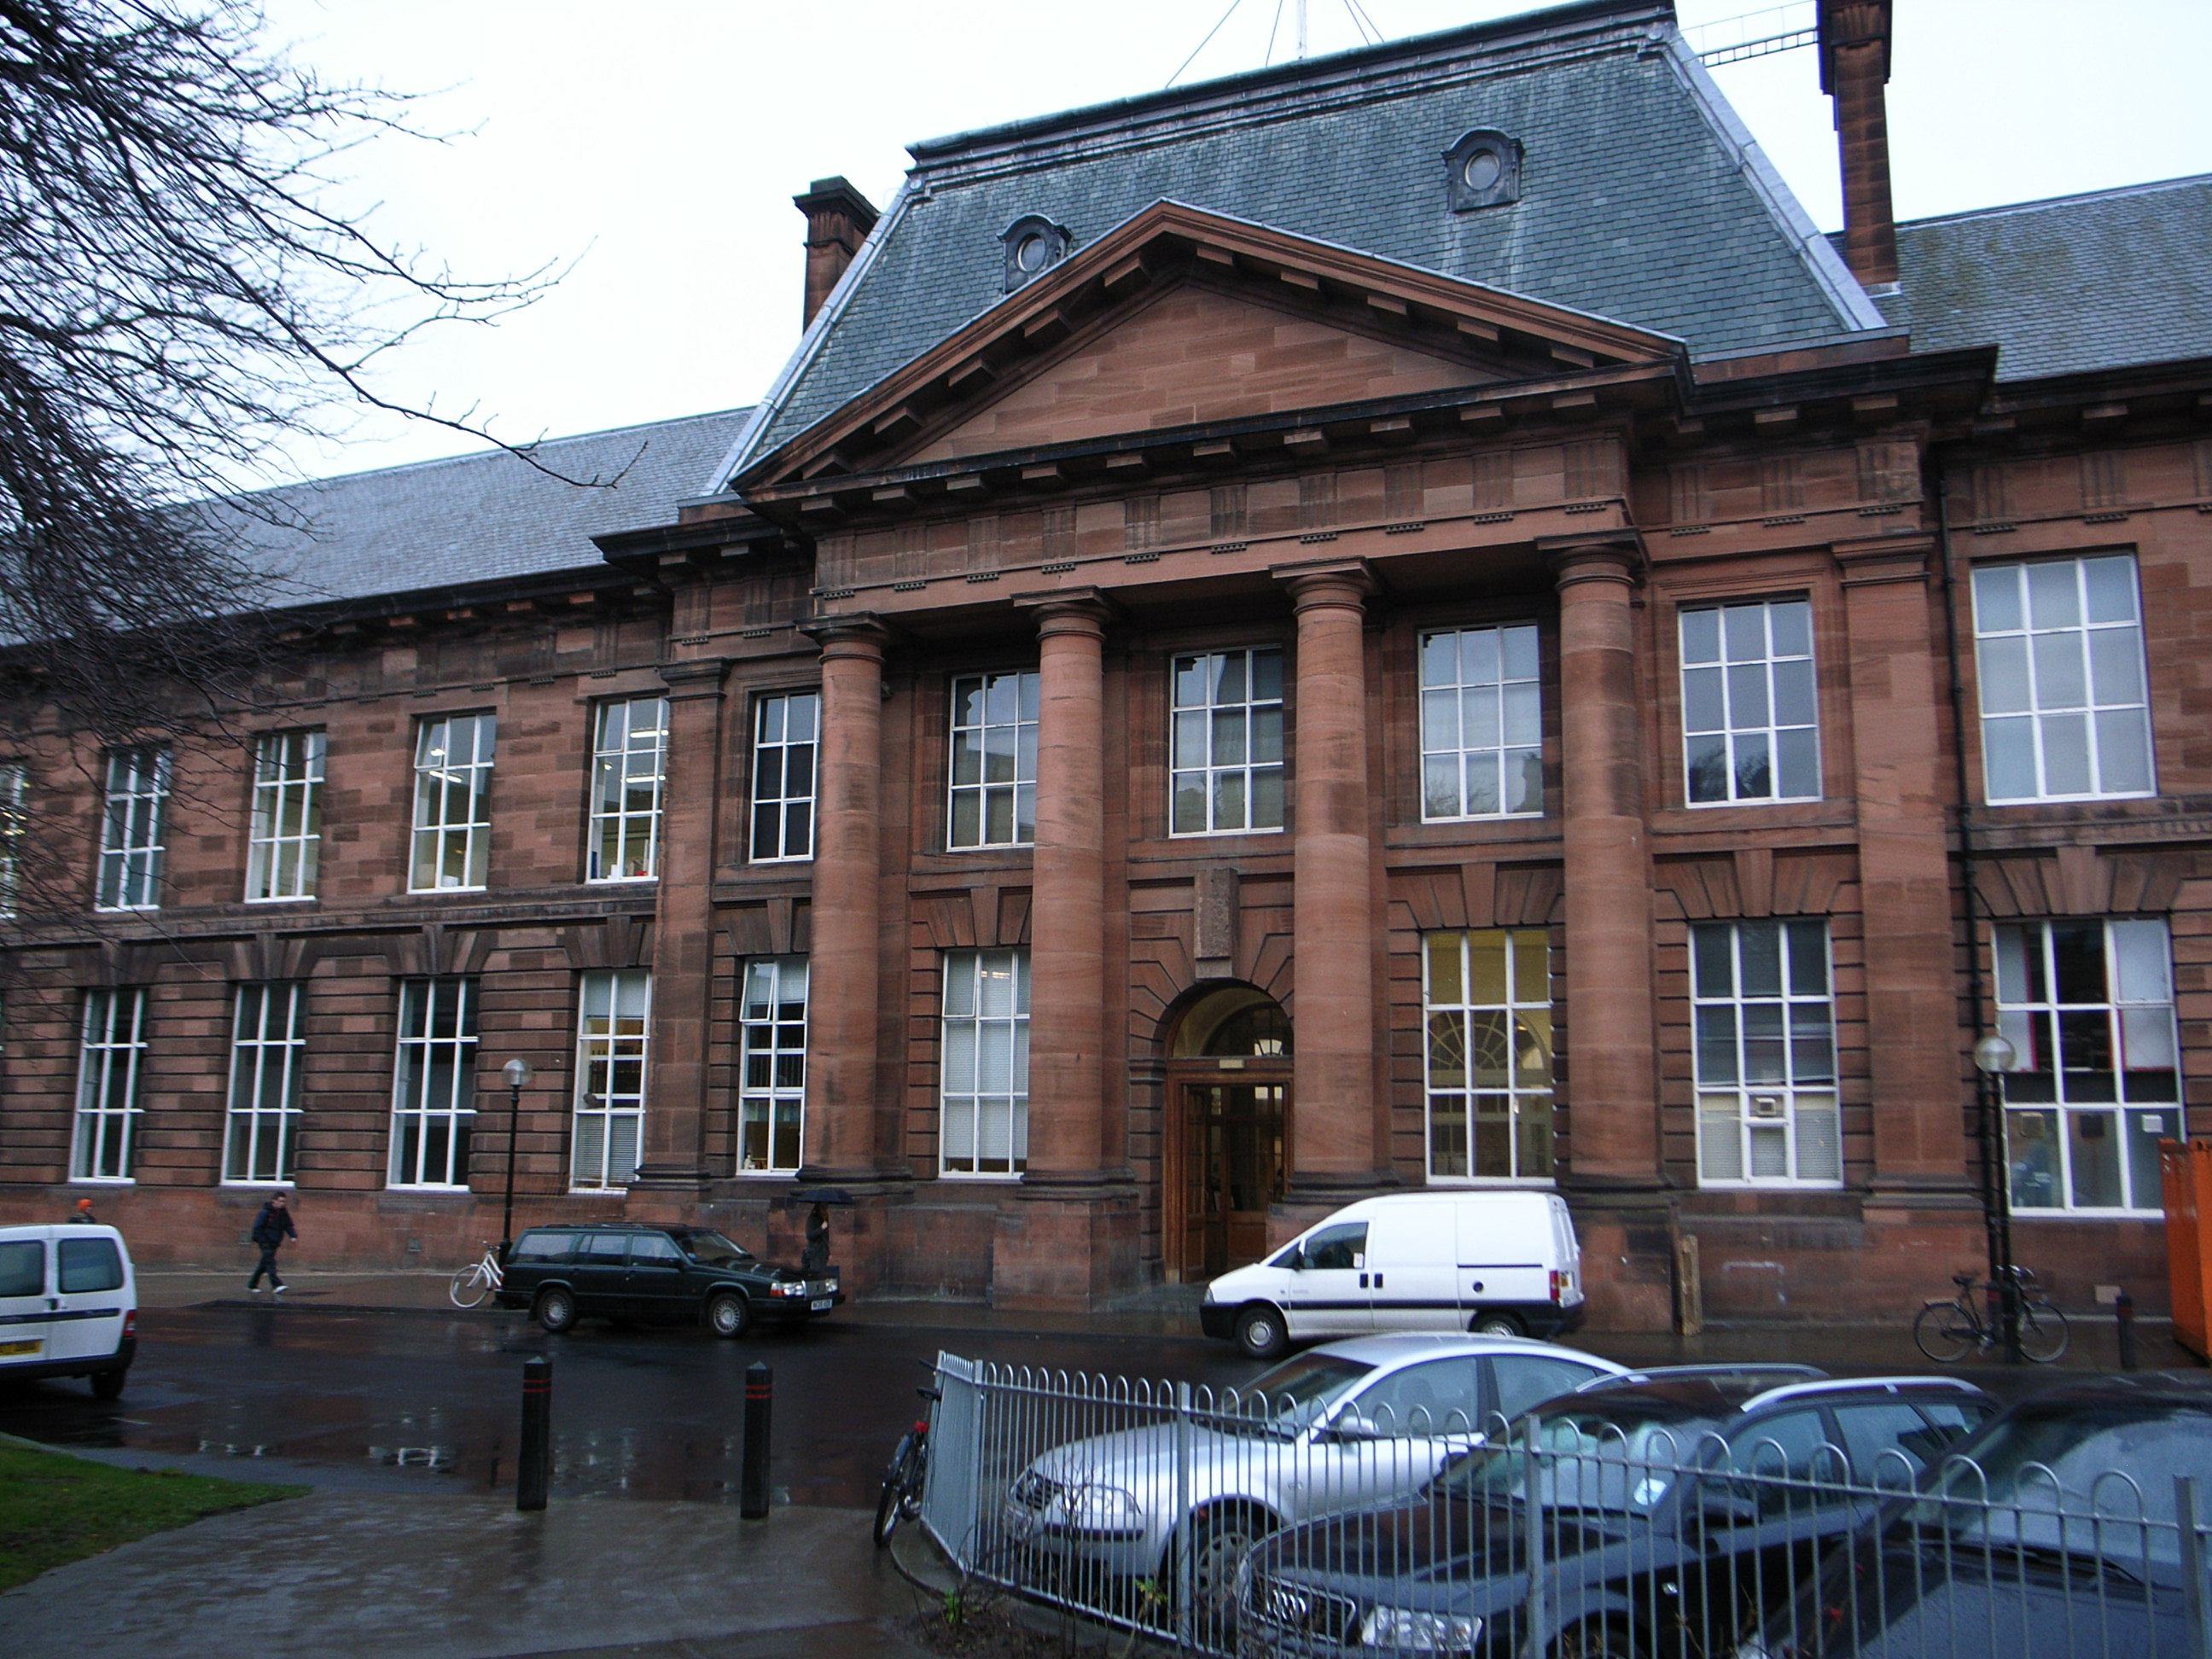 Edinburgh College Of Art Wikipedia